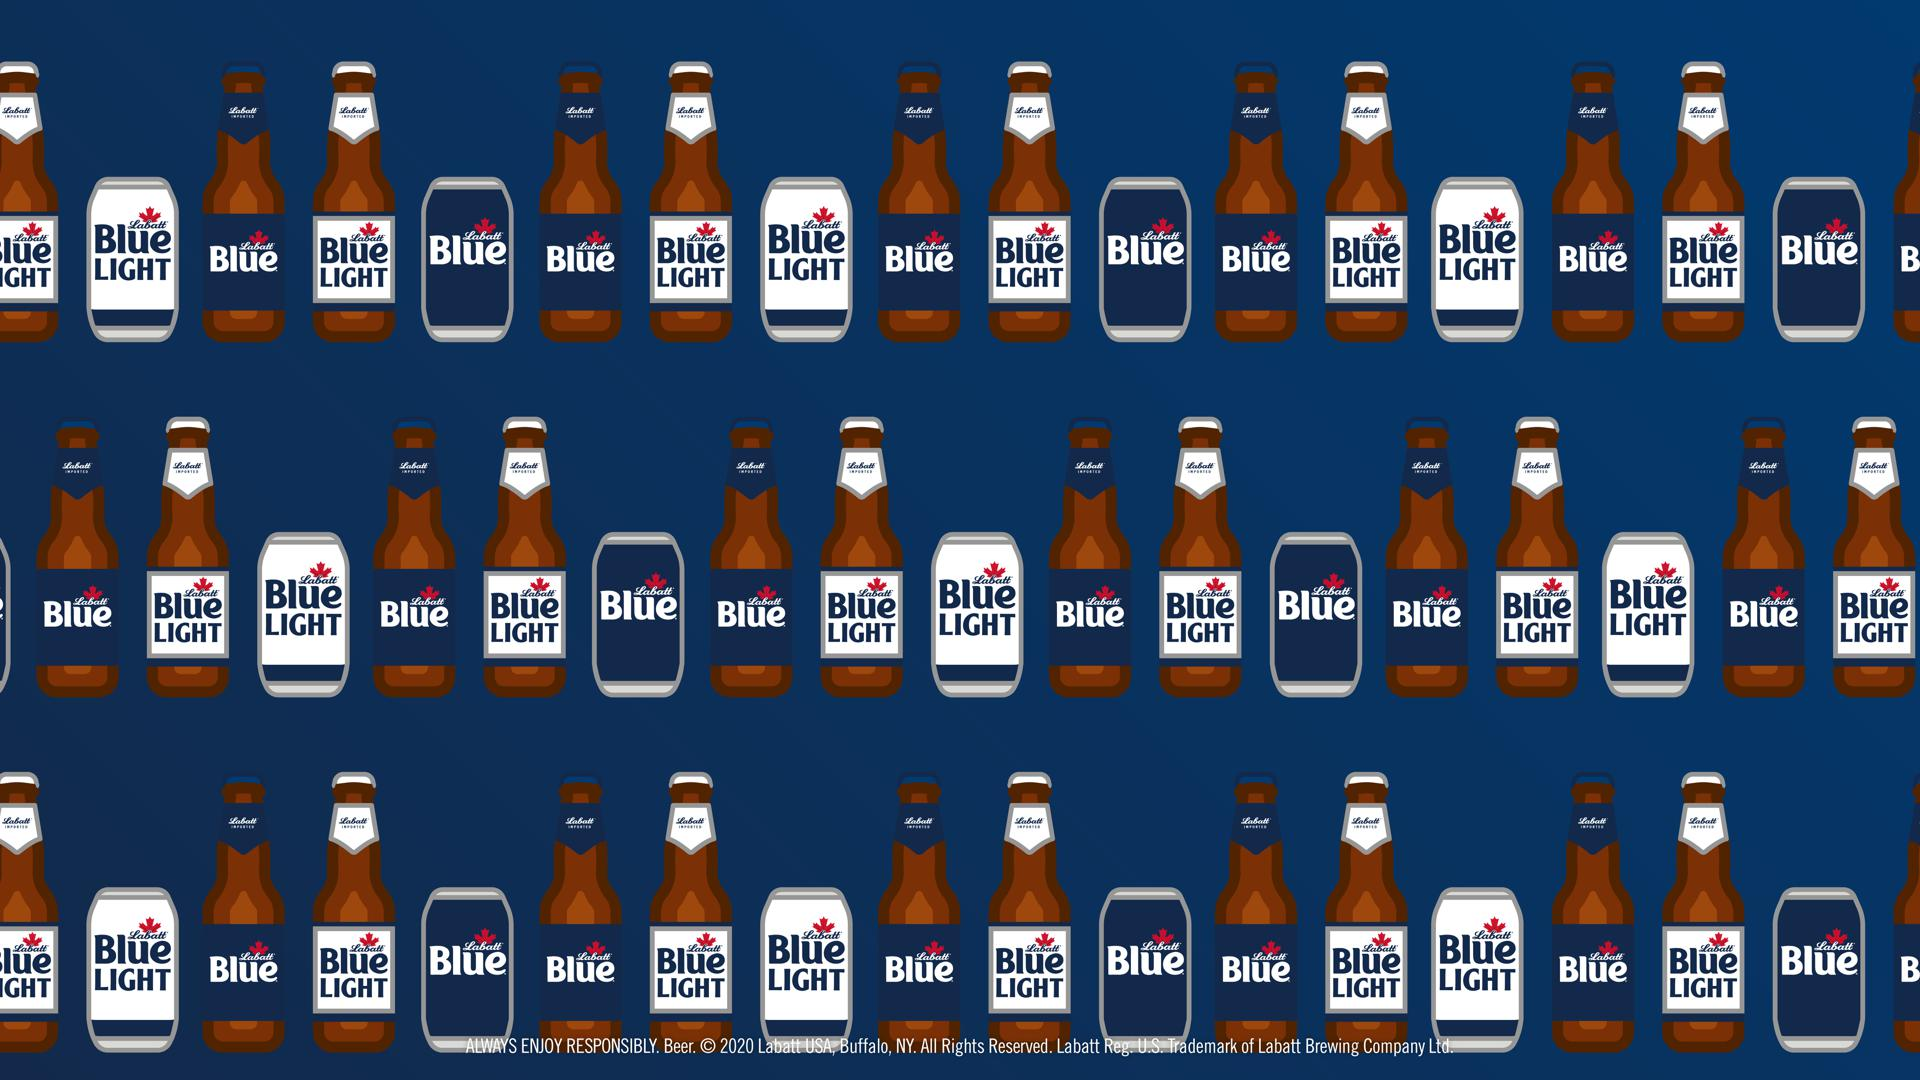 Illustrated Blue and Blue Light Cans and Bottles Background